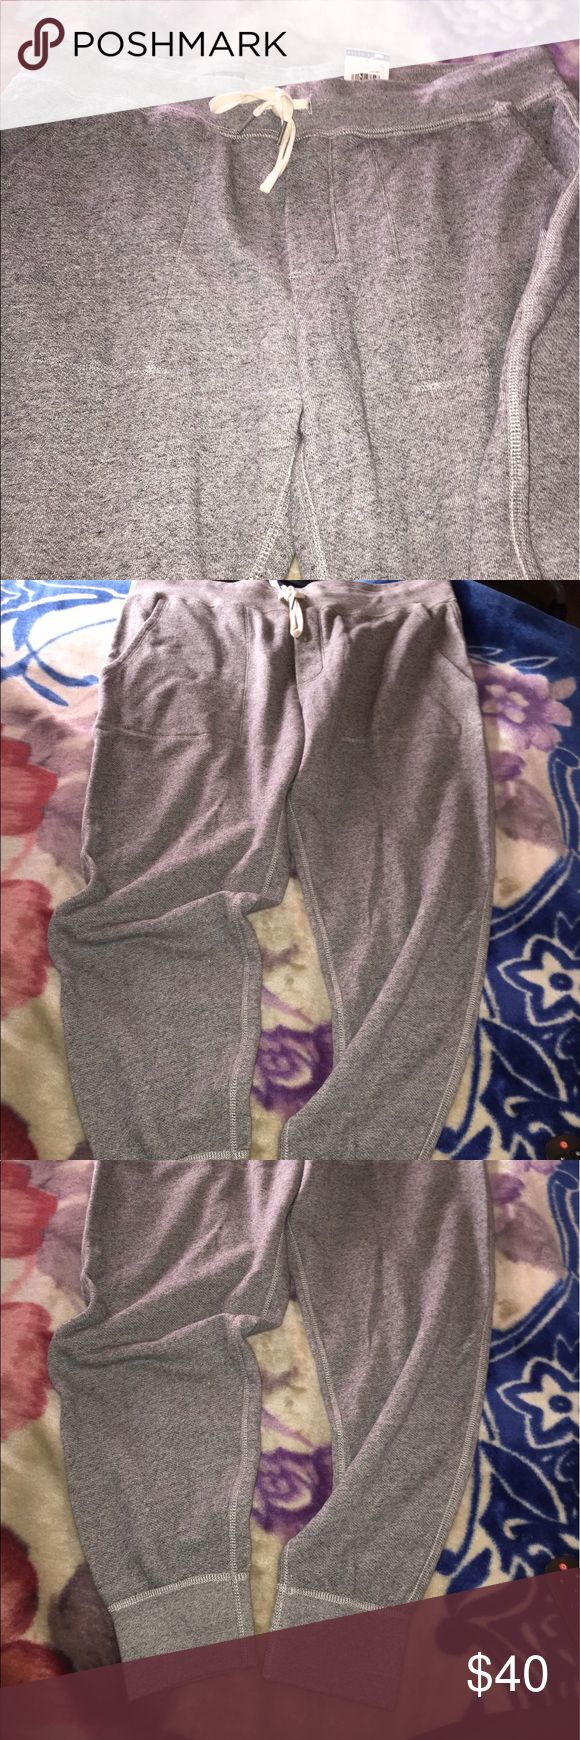 L men's NWT POLO RALPH LAUREN Grey sweatpants jogg New with tags,men's sz L , grey sweatpants with the cuffed bottom jogger style legs,great stylish warm pants for fall and winter with sneakers, great as a Christmas gift. Polo Ralph Lauren brand. Polo by Ralph Lauren Pants Sweatpants & Joggers